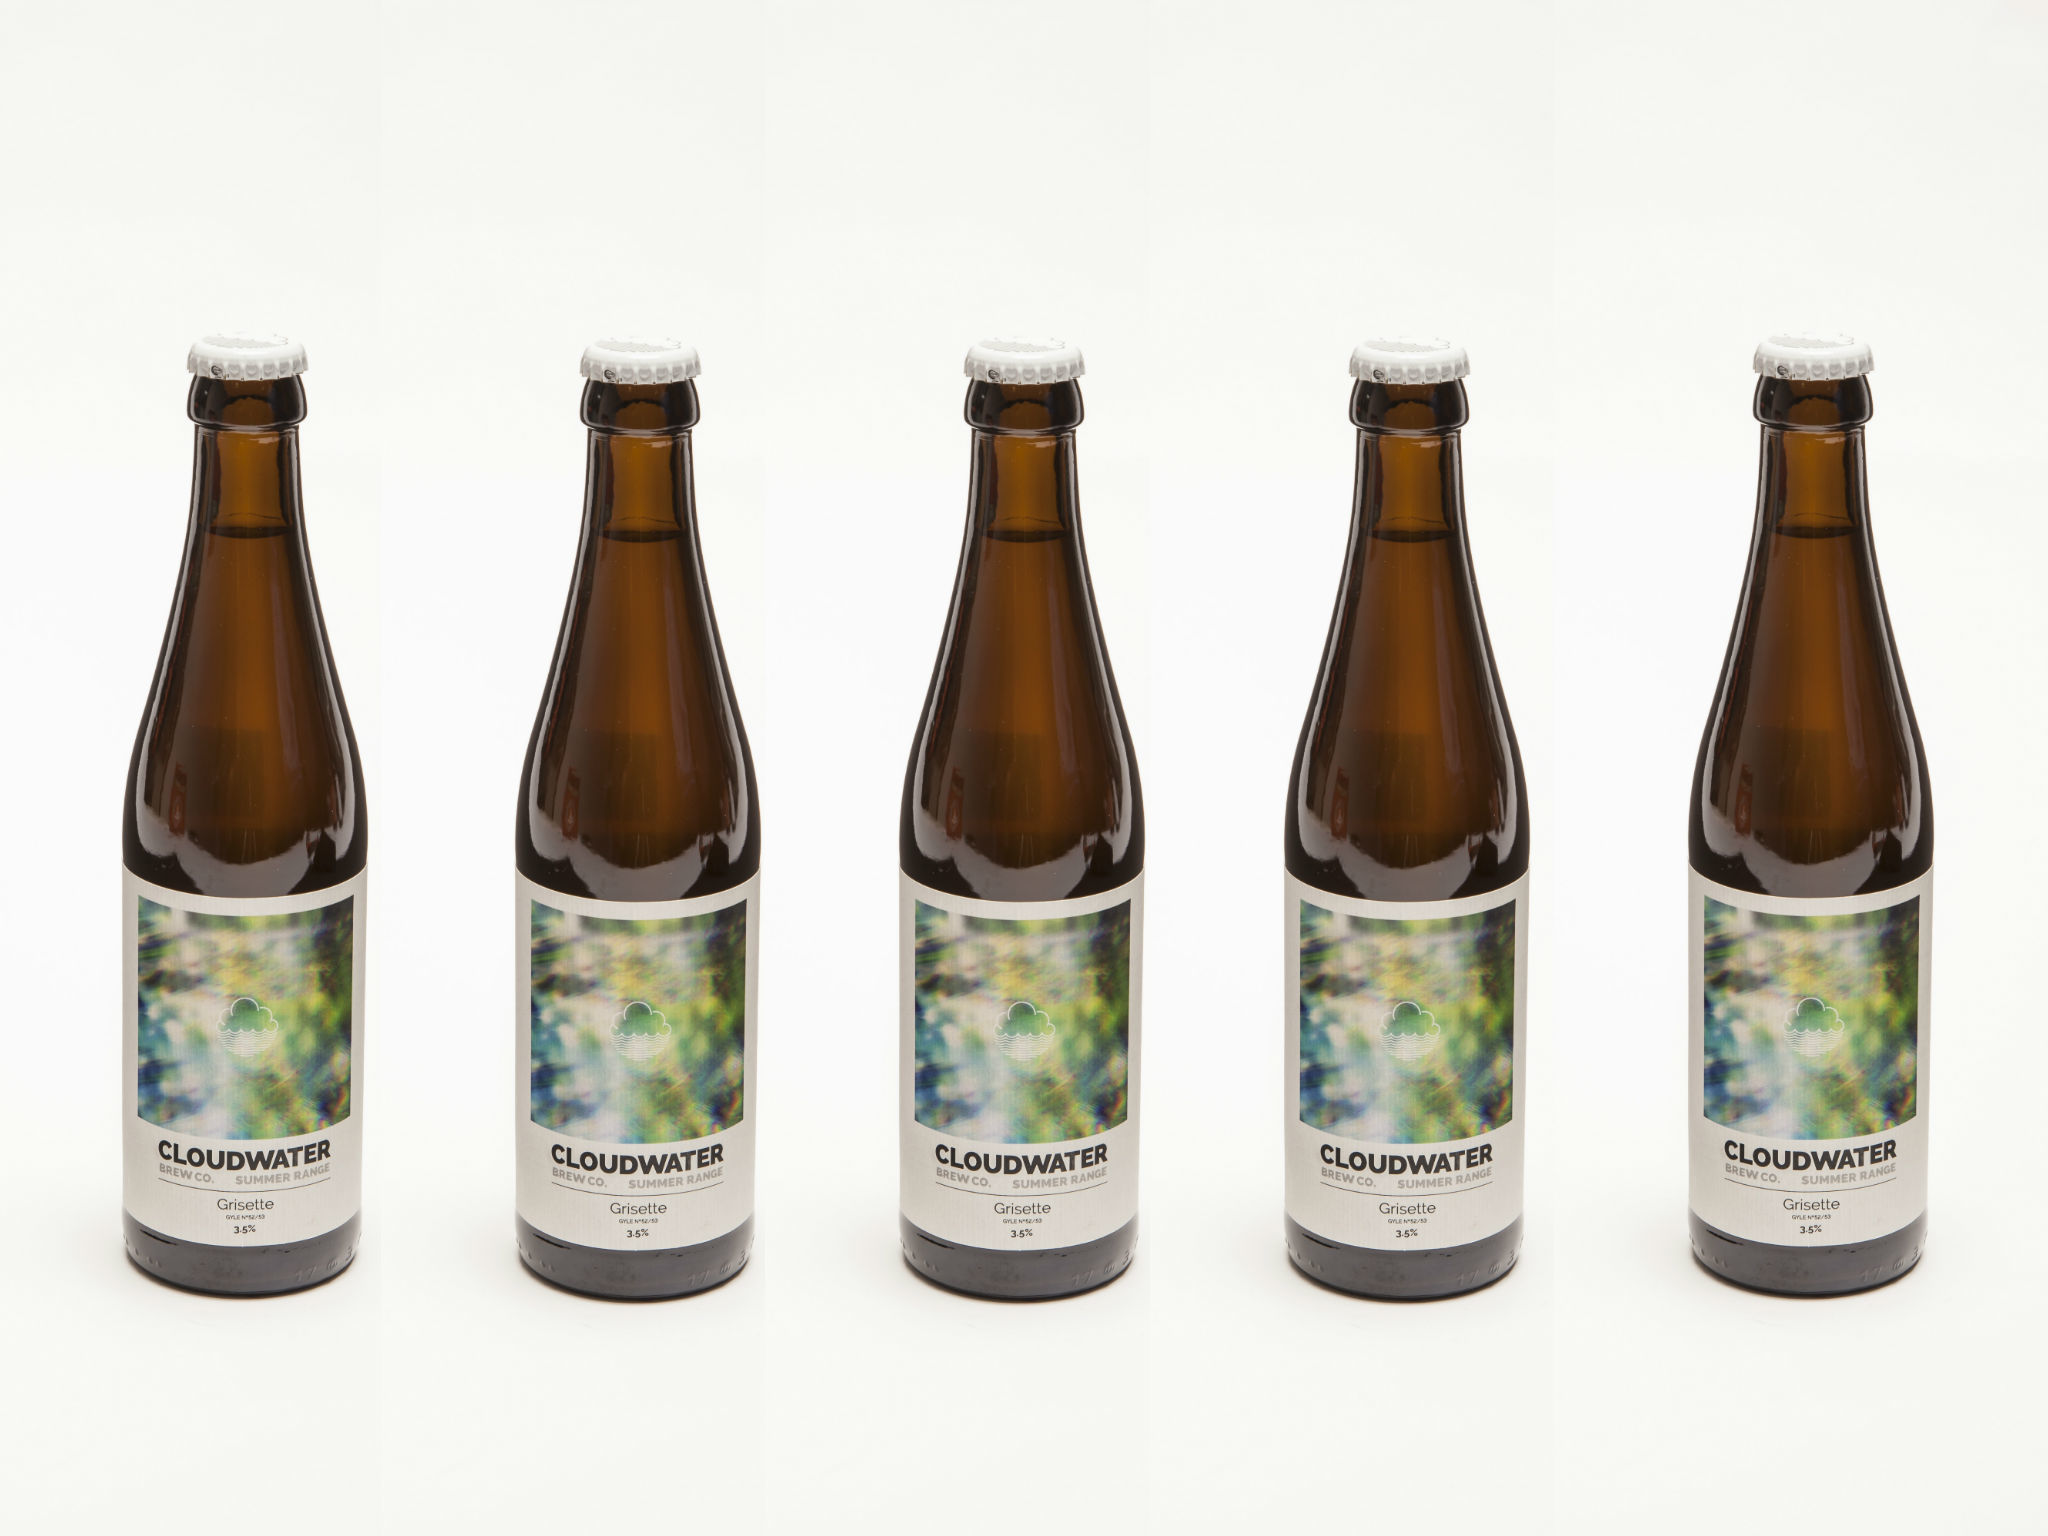 Cloudwater – Grisette